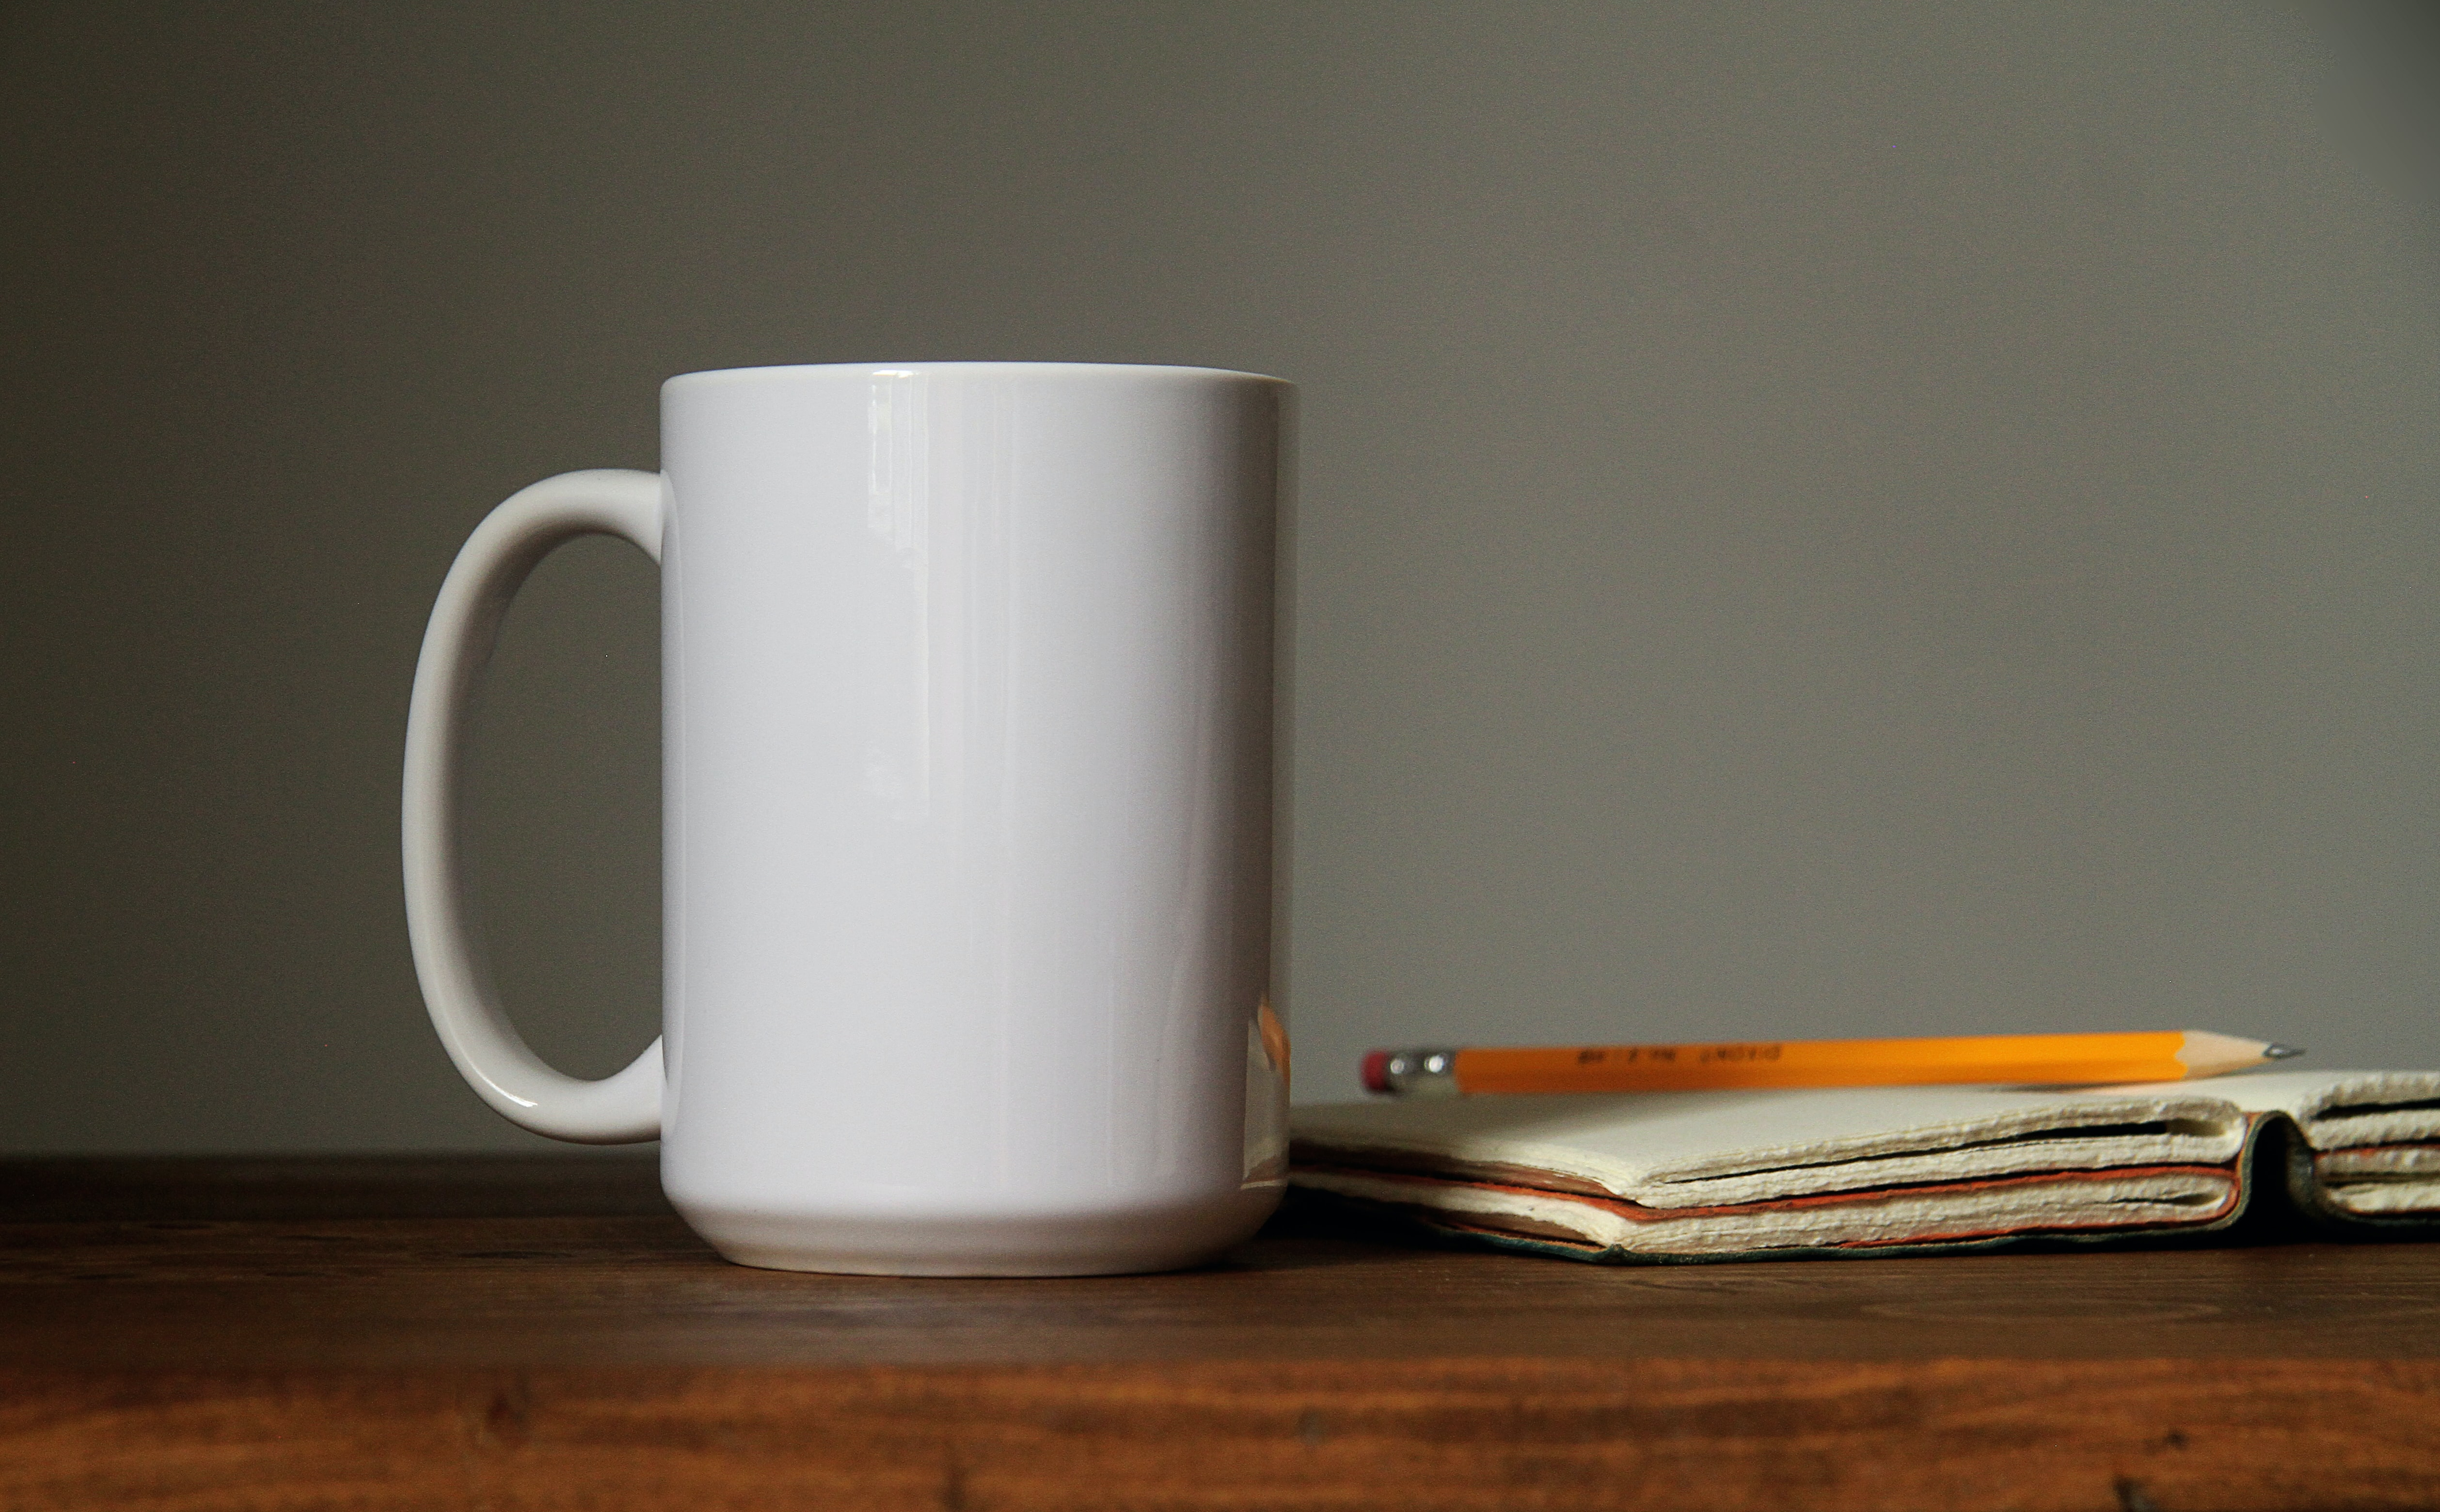 white ceramic mug beside orange pencil on open book page